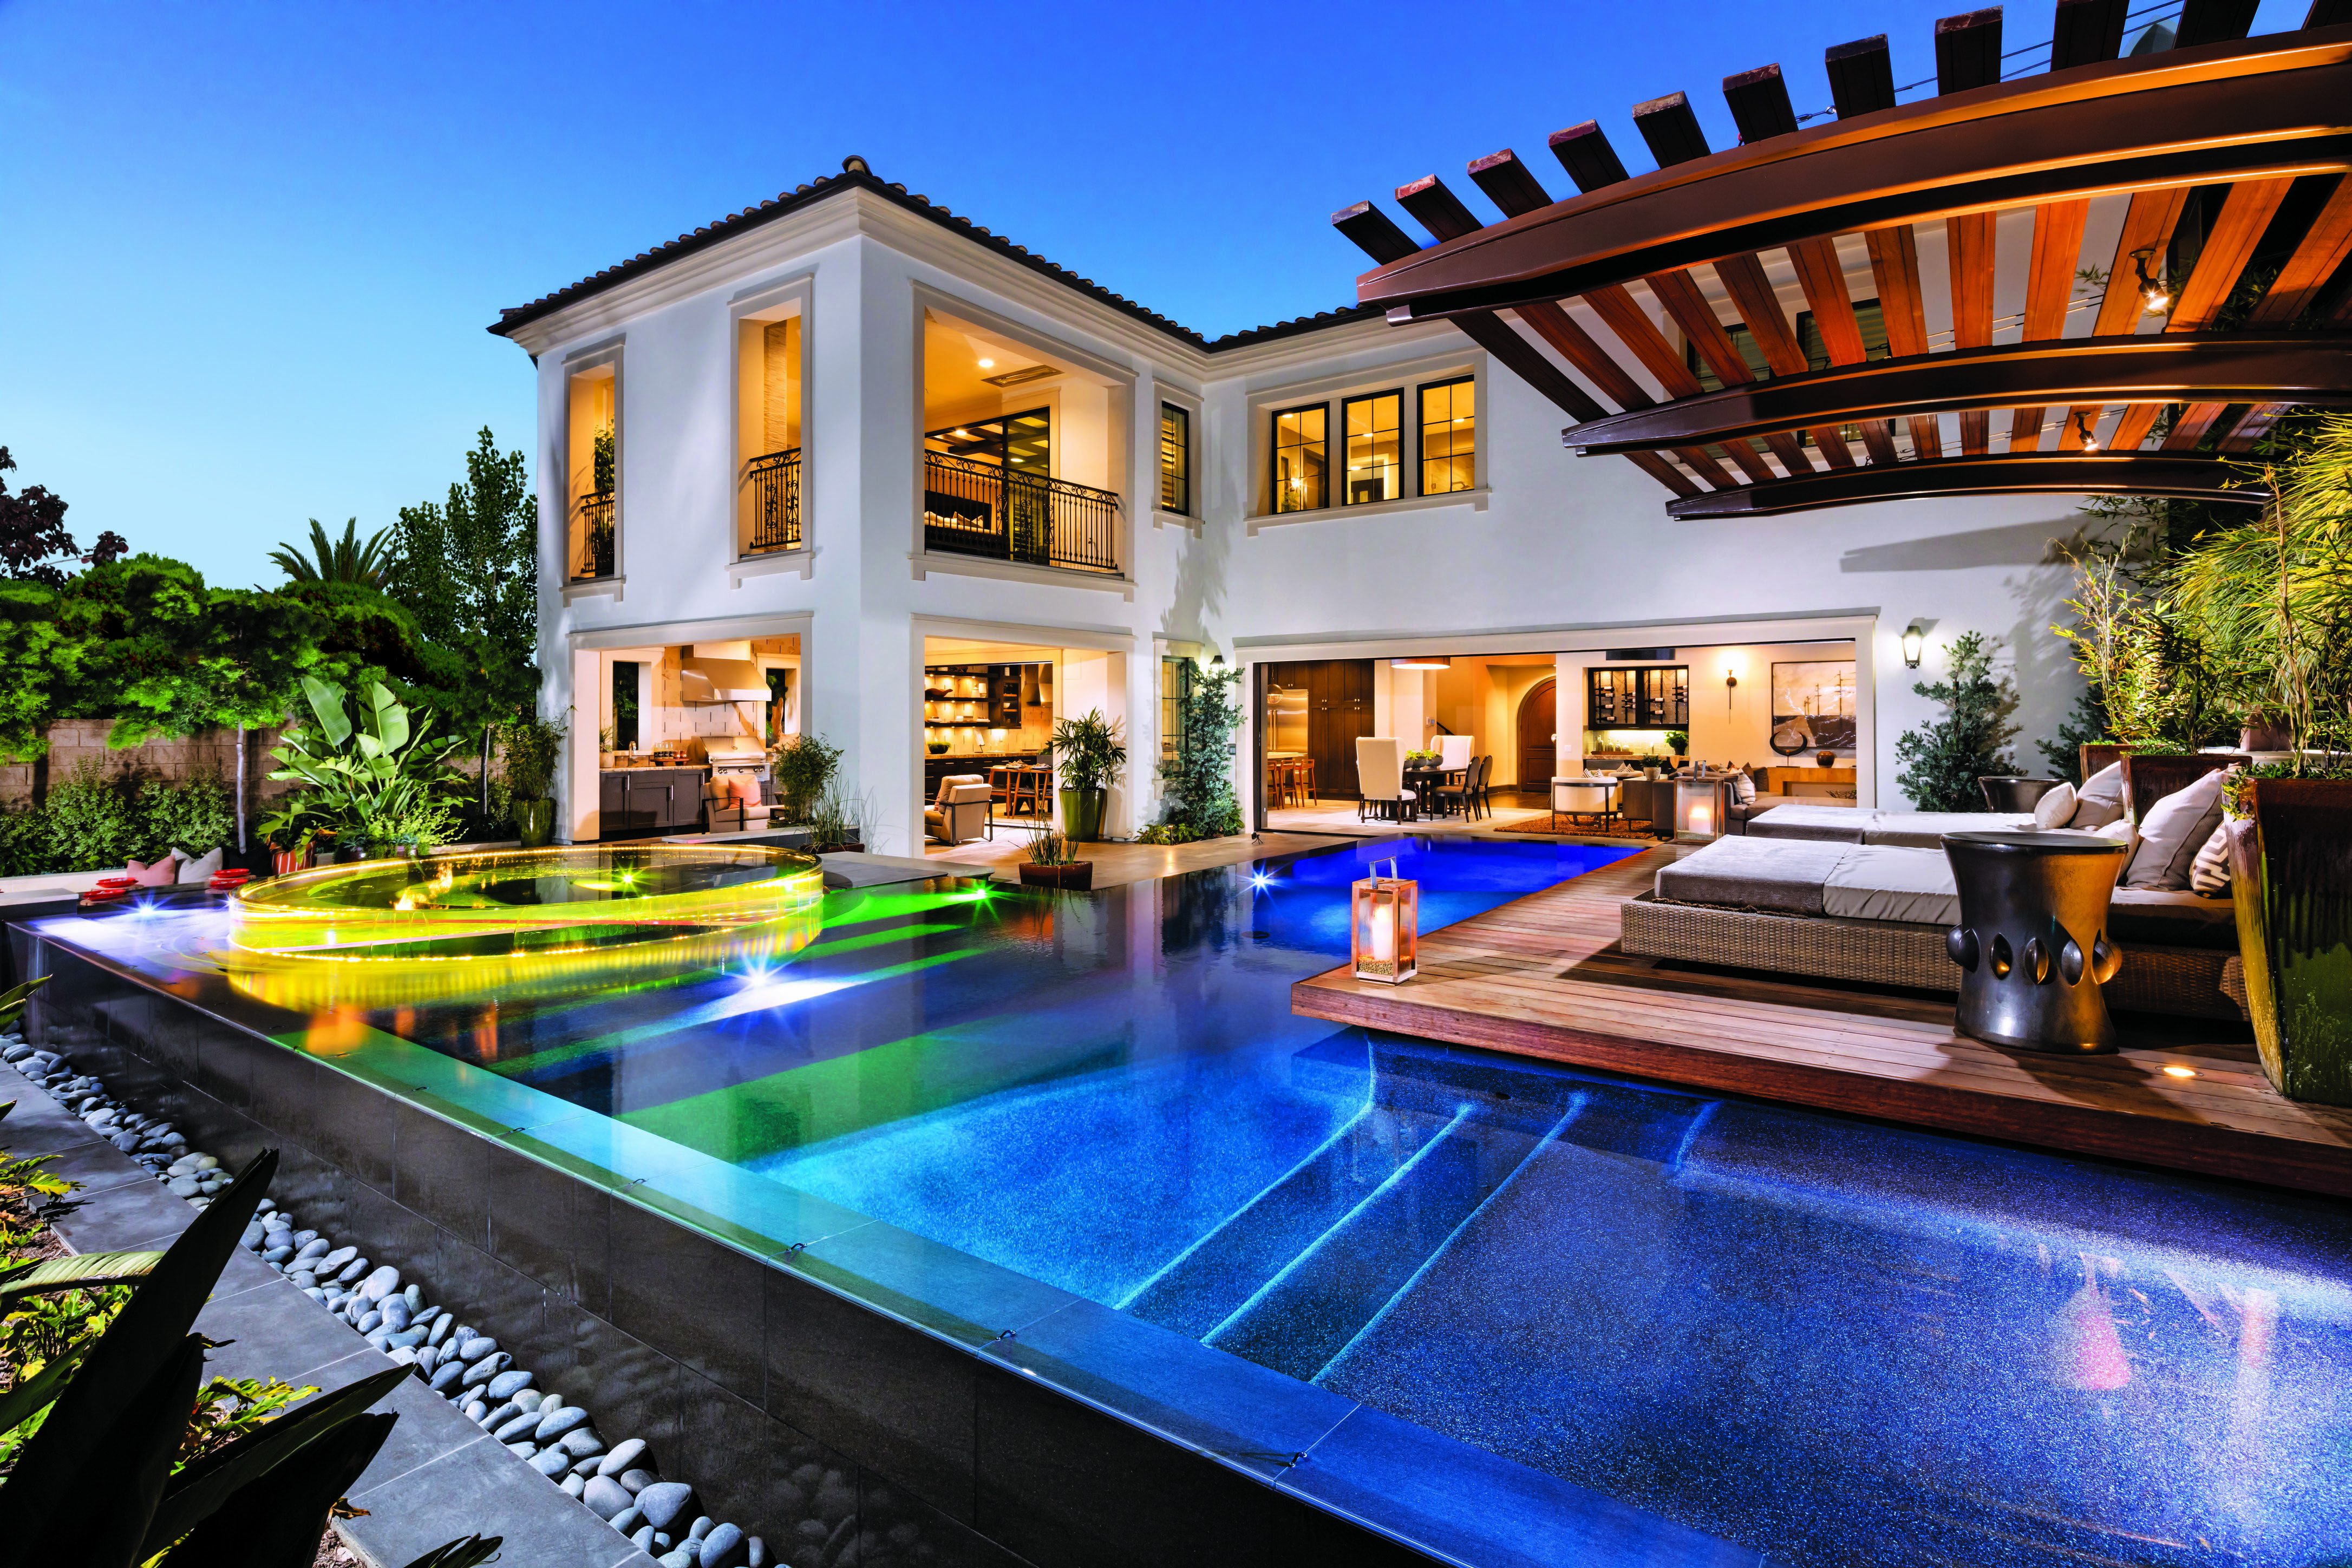 Hidden Canyon Offers Luxury Pools And Swim Up Decks Luxury Homes Dream Houses Mansions Dream House Exterior